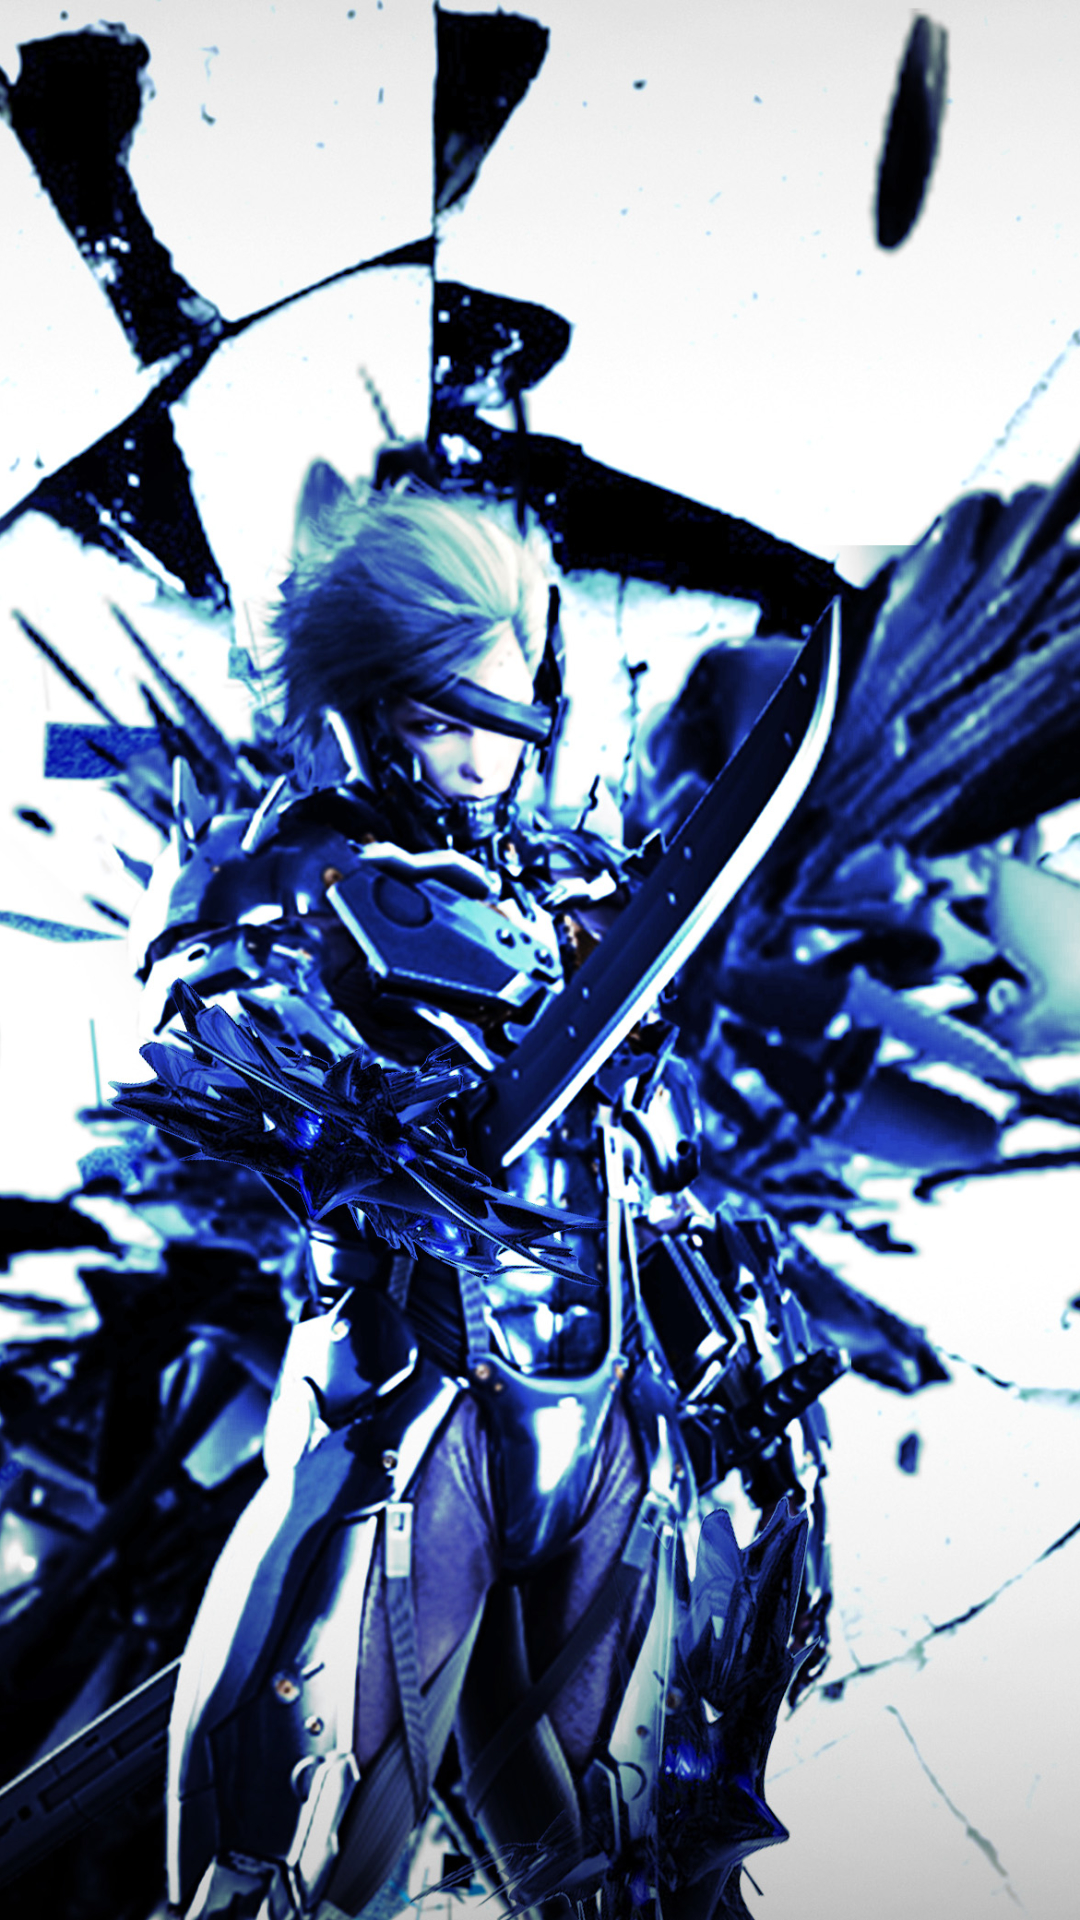 Video gamemetal gear rising 1080x1920 wallpaper id 678415 raiden video game metal gear rising 1080x1920 mobile wallpaper voltagebd Choice Image